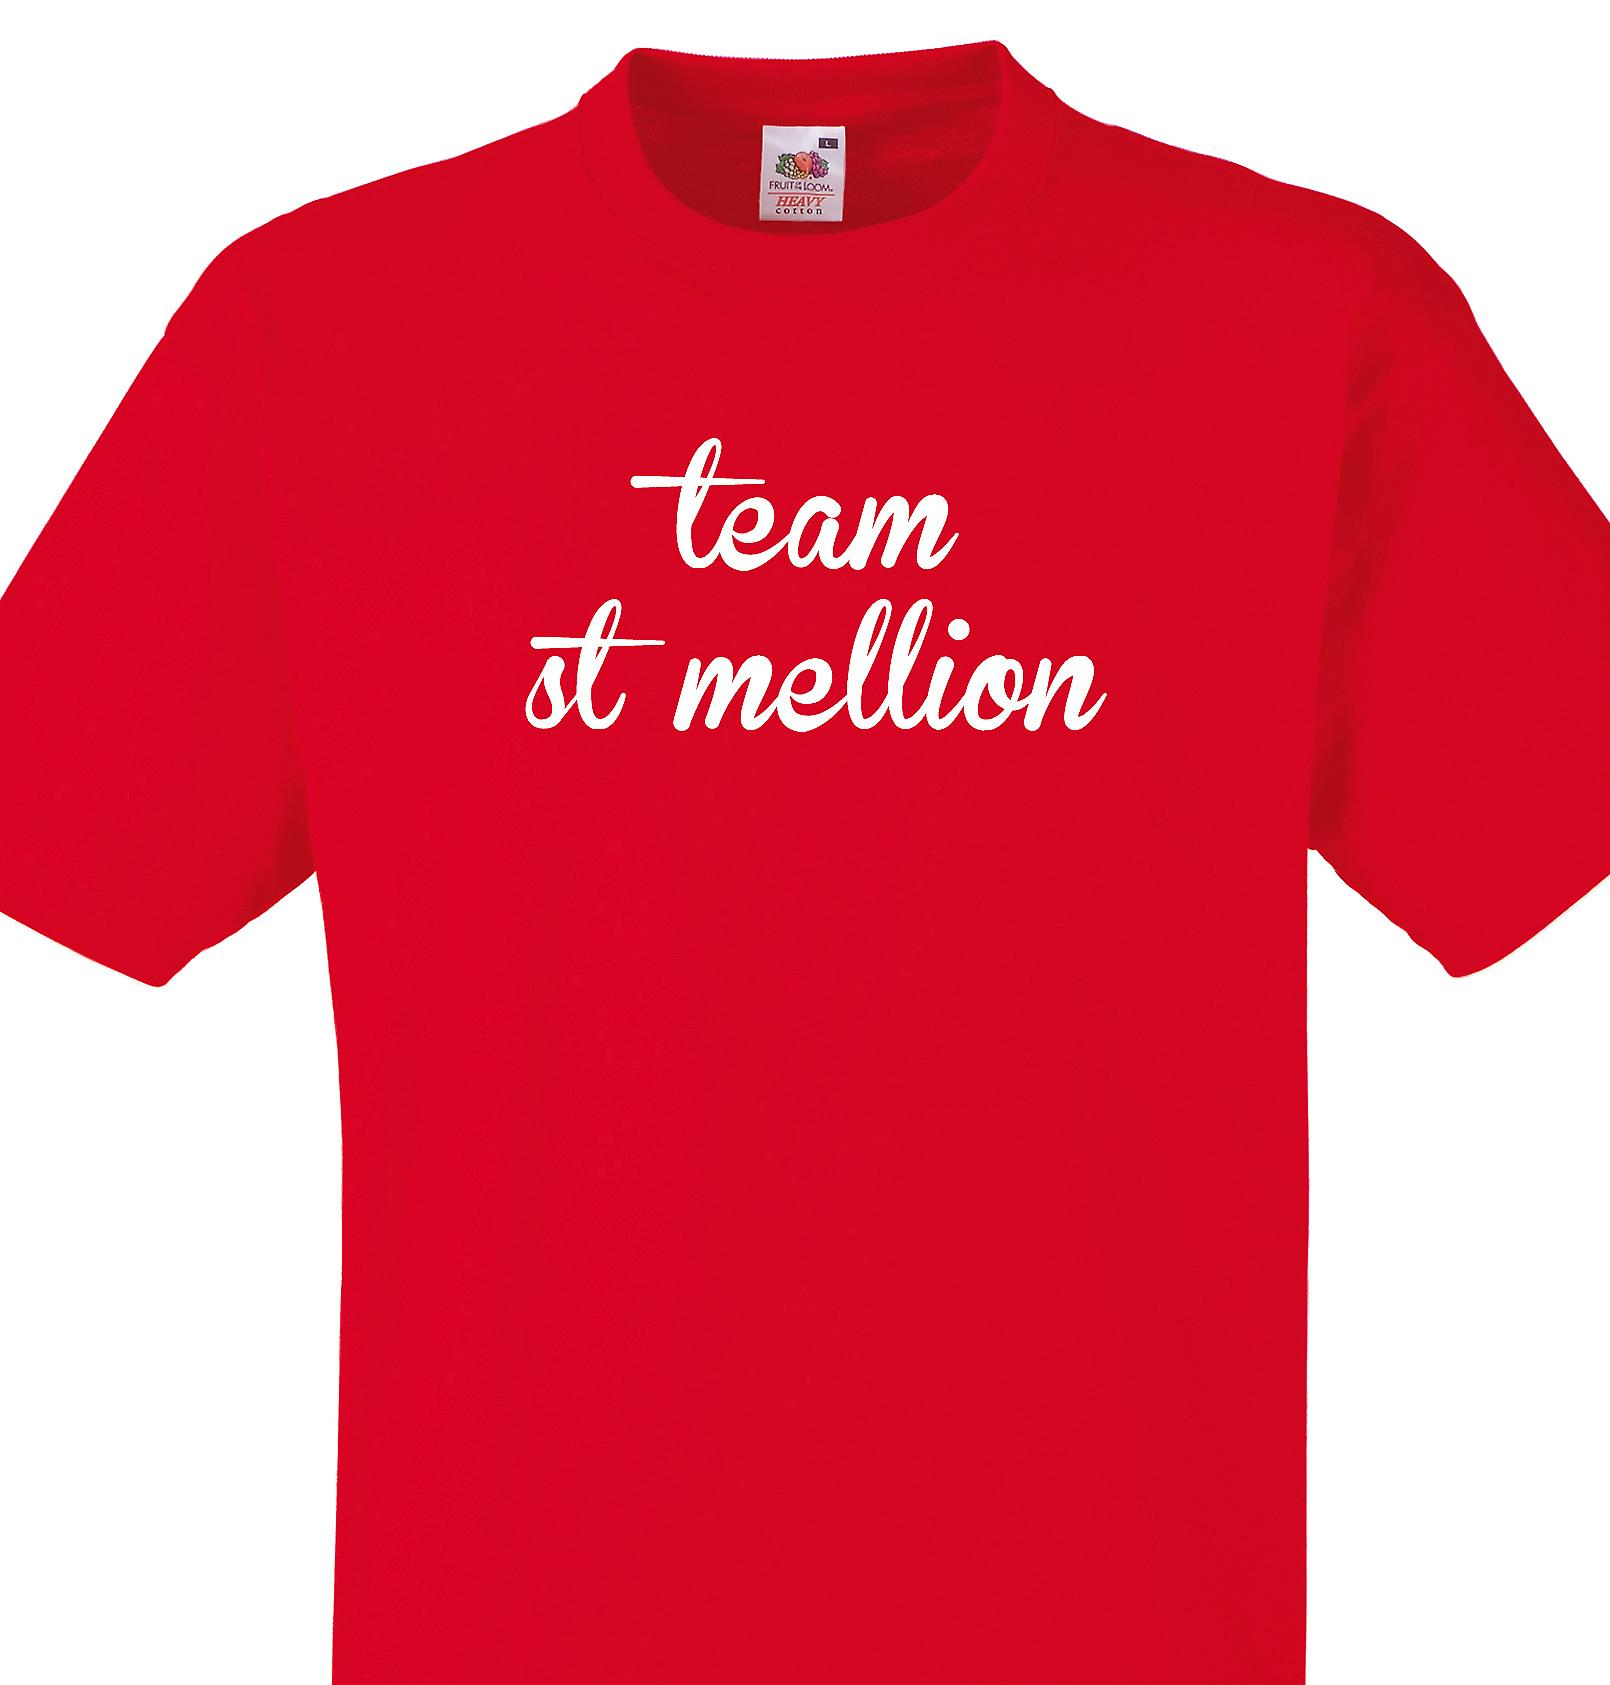 Team St mellion Red T shirt